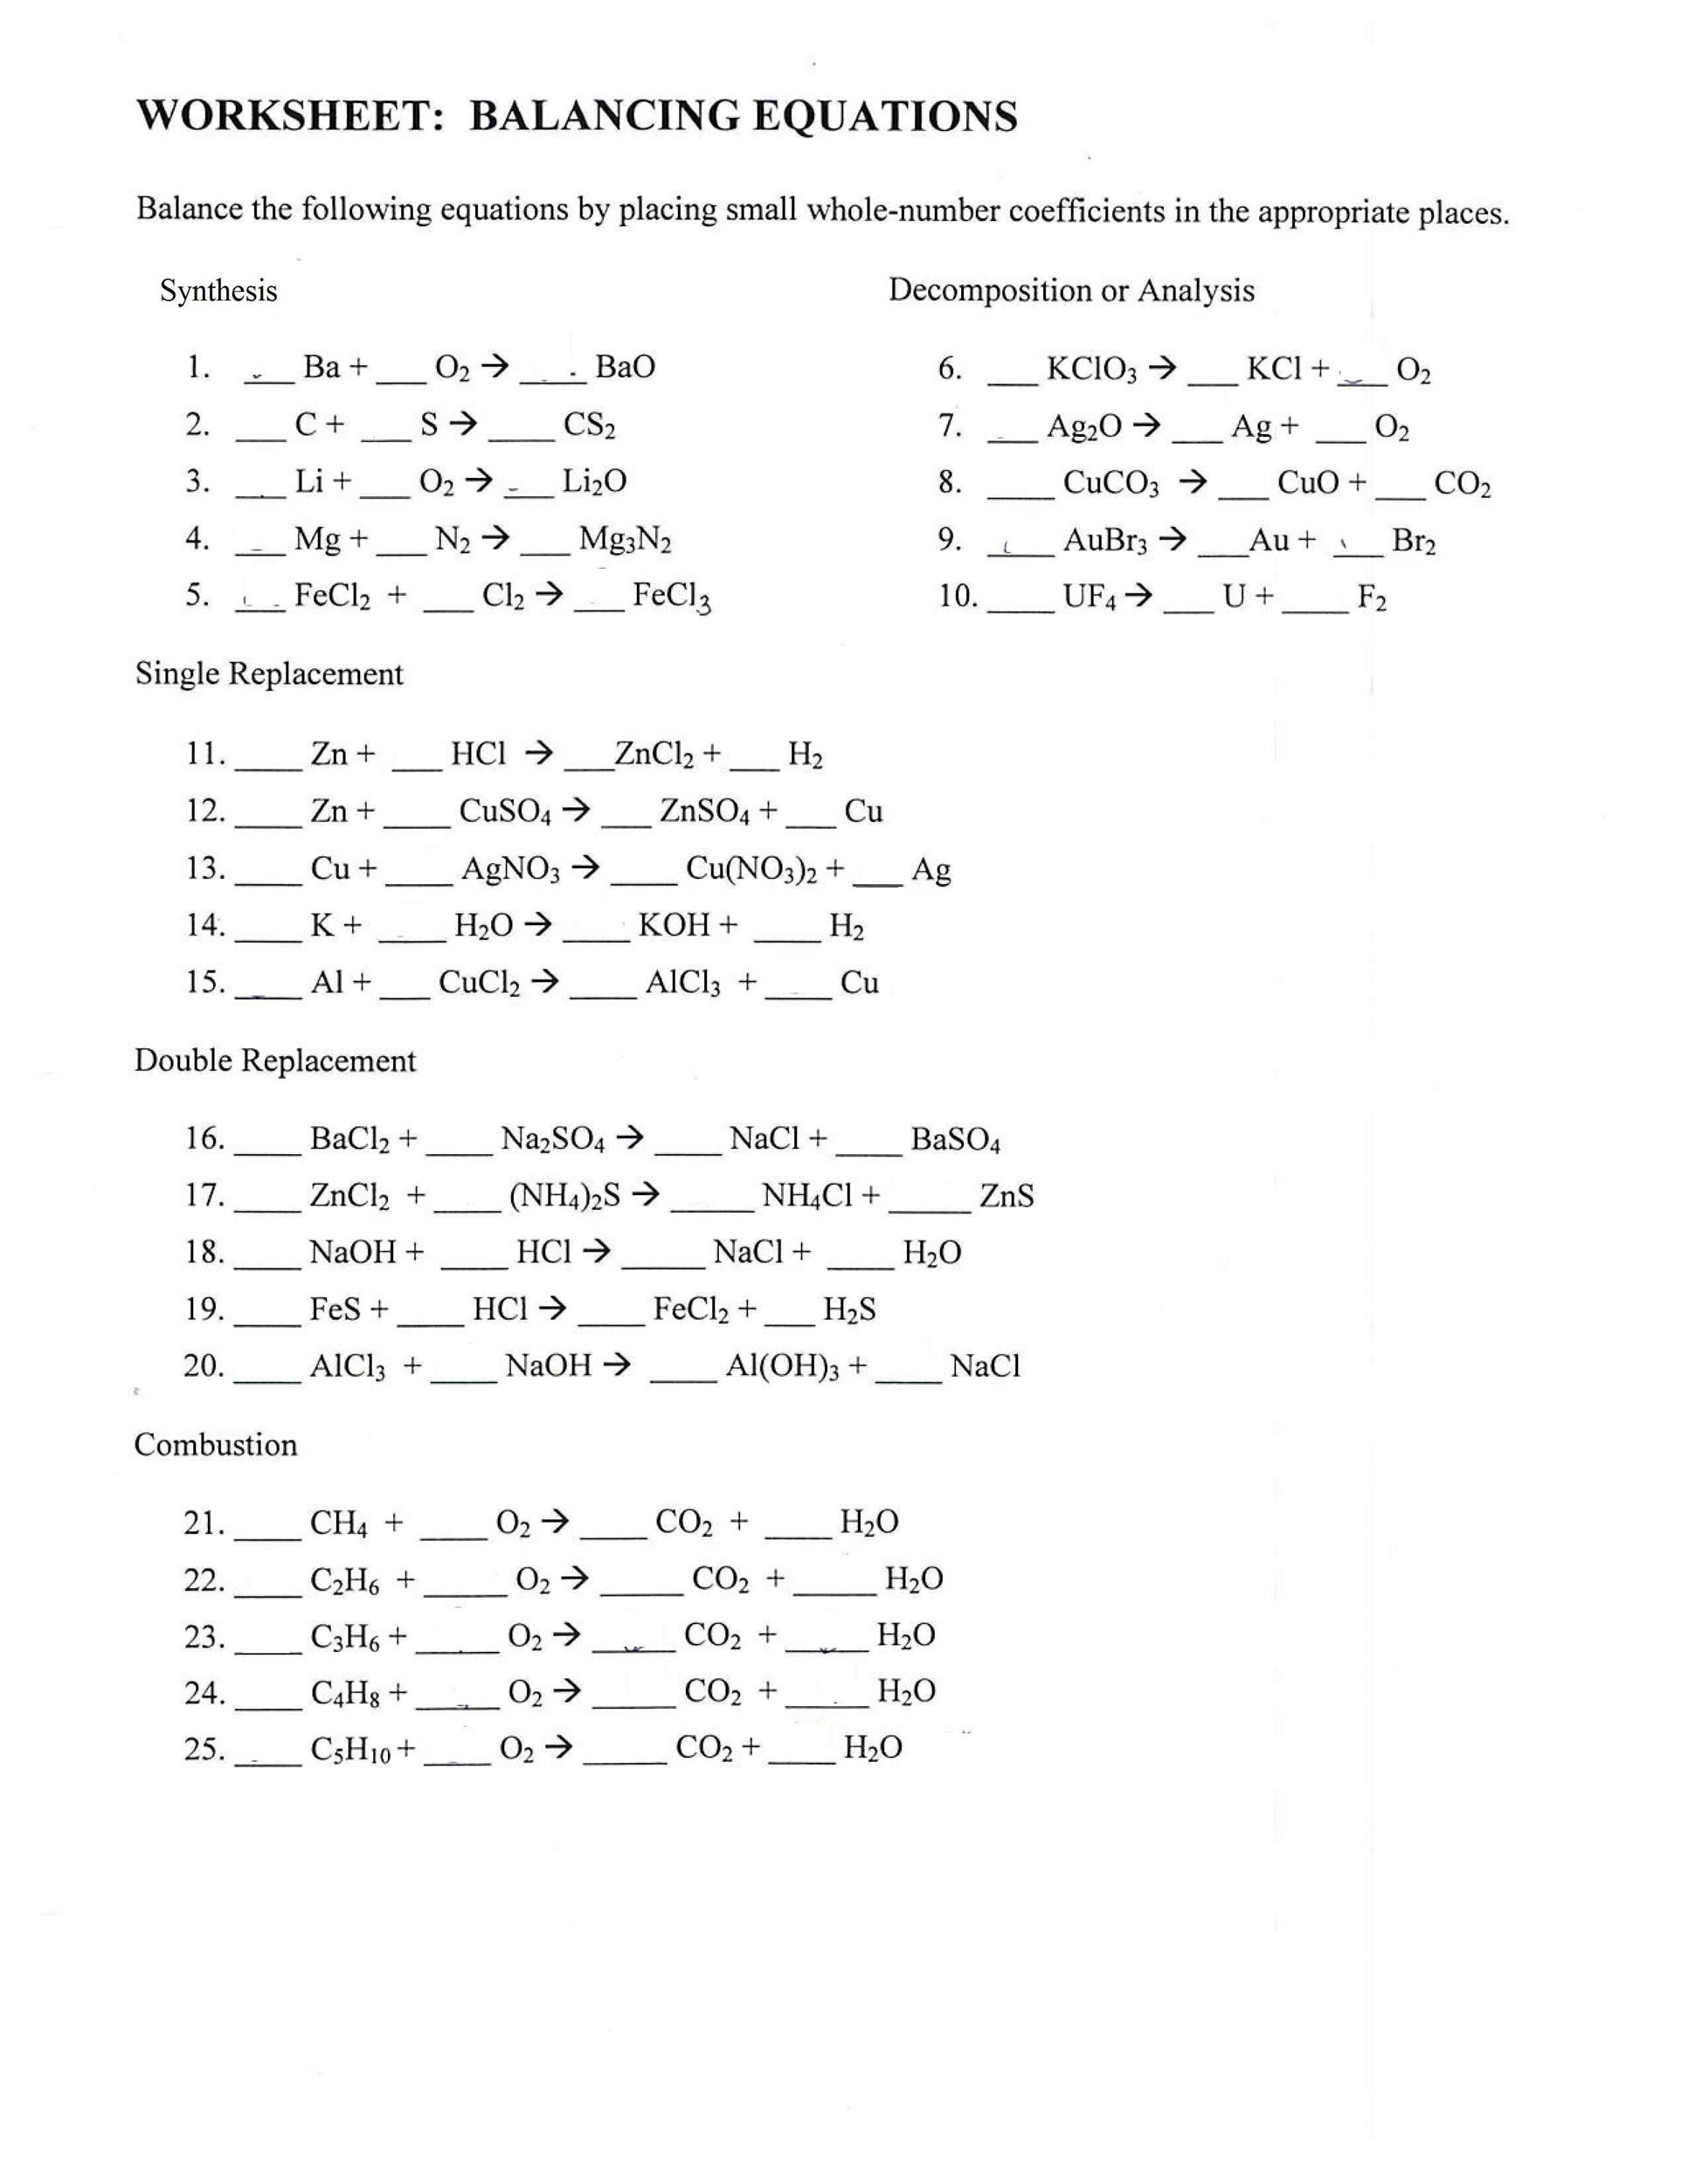 Worksheet Balancing Equations Answers